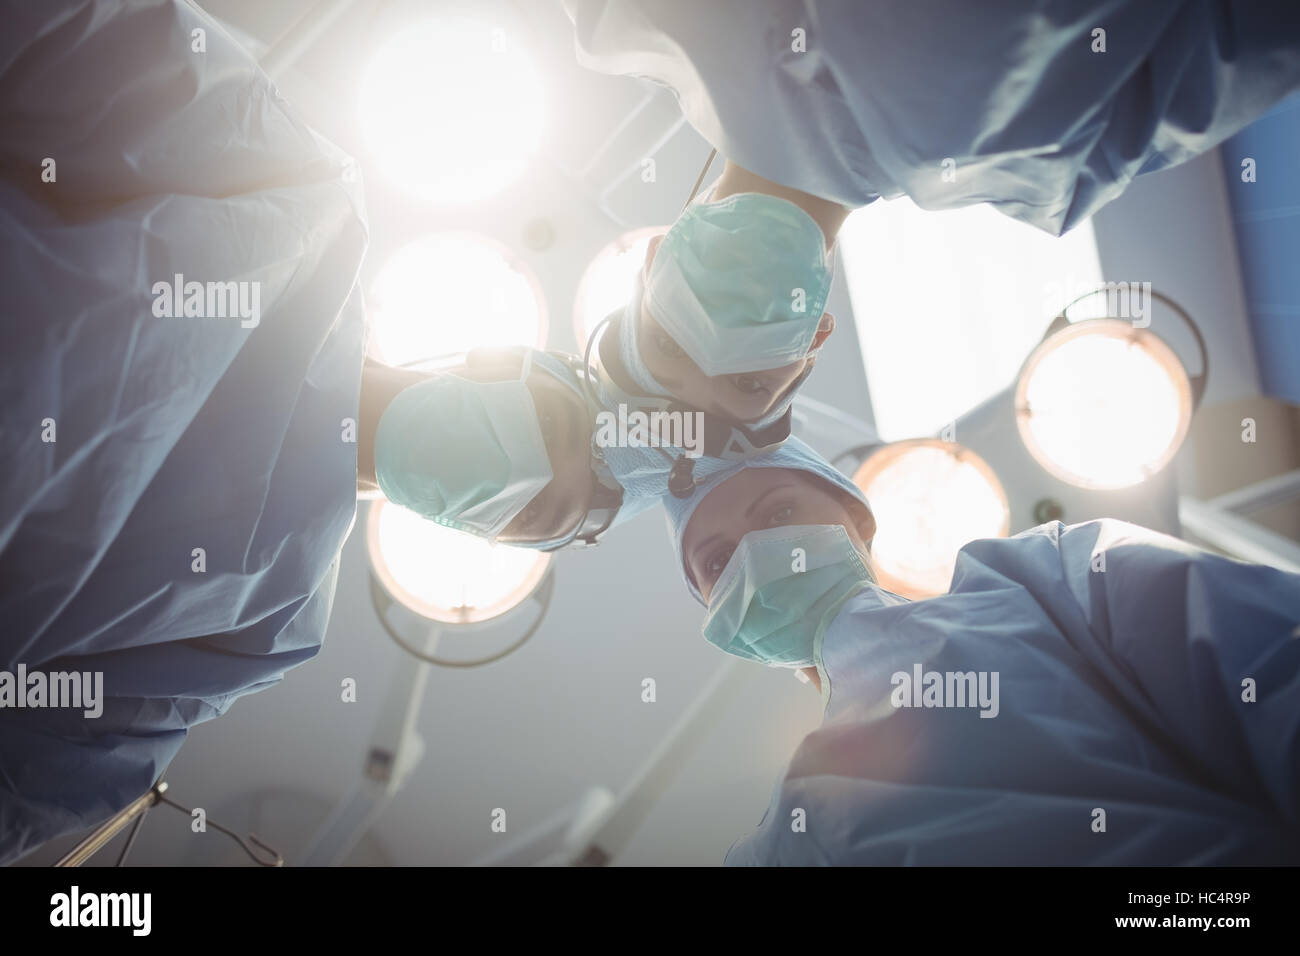 Surgeons performing operation in operation room - Stock Image